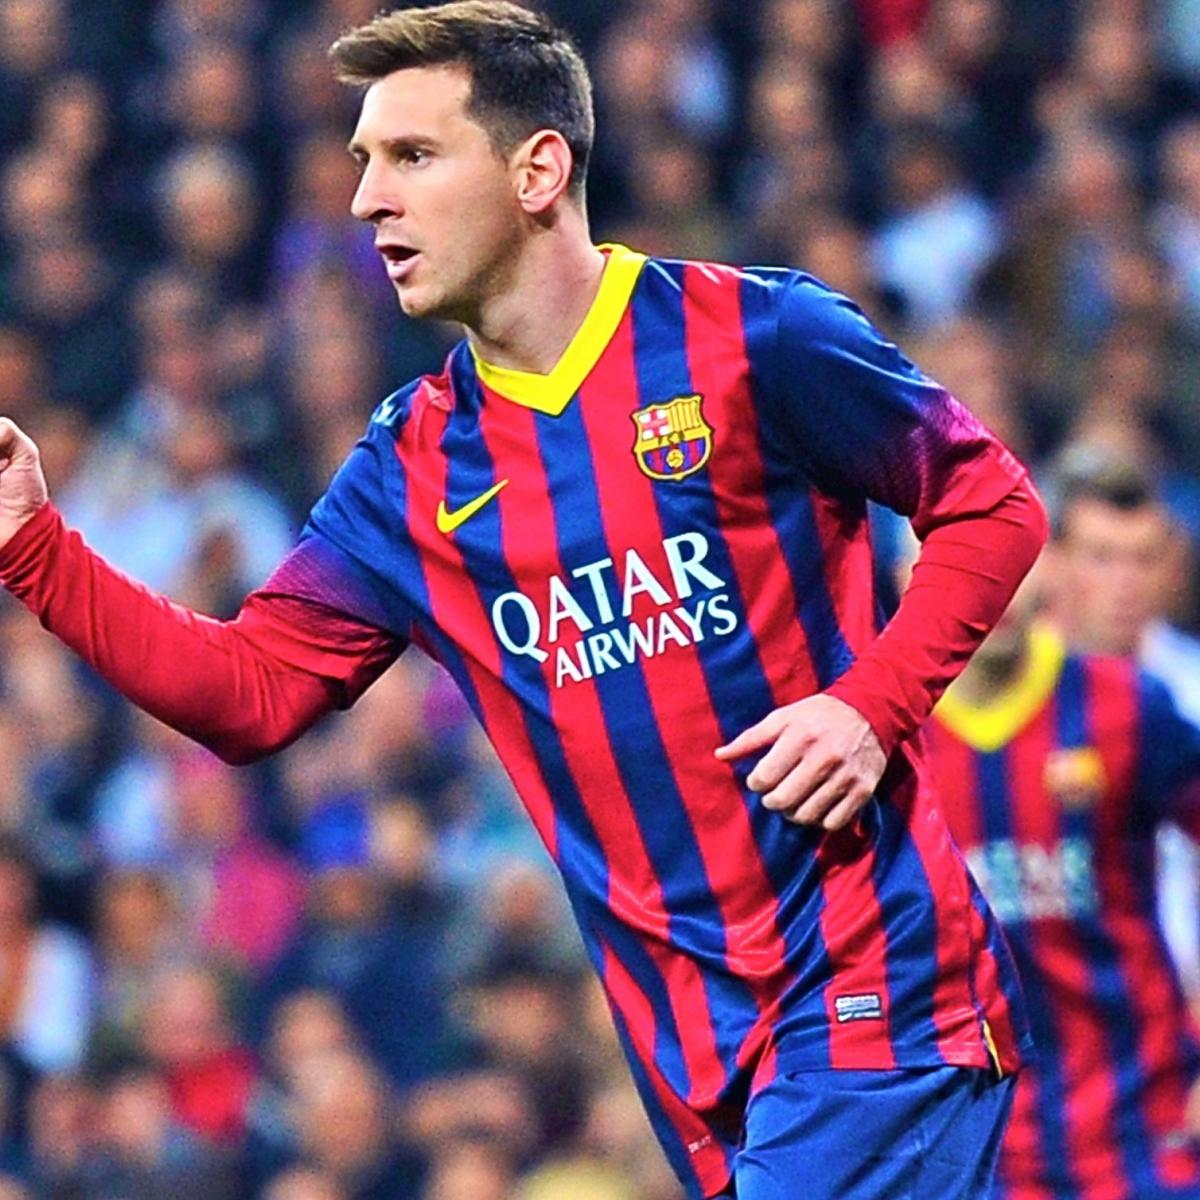 Barcelona Vs Celta Vigo Goals Today: Barcelona Vs. Celta Vigo: La Liga Live Score, Highlights